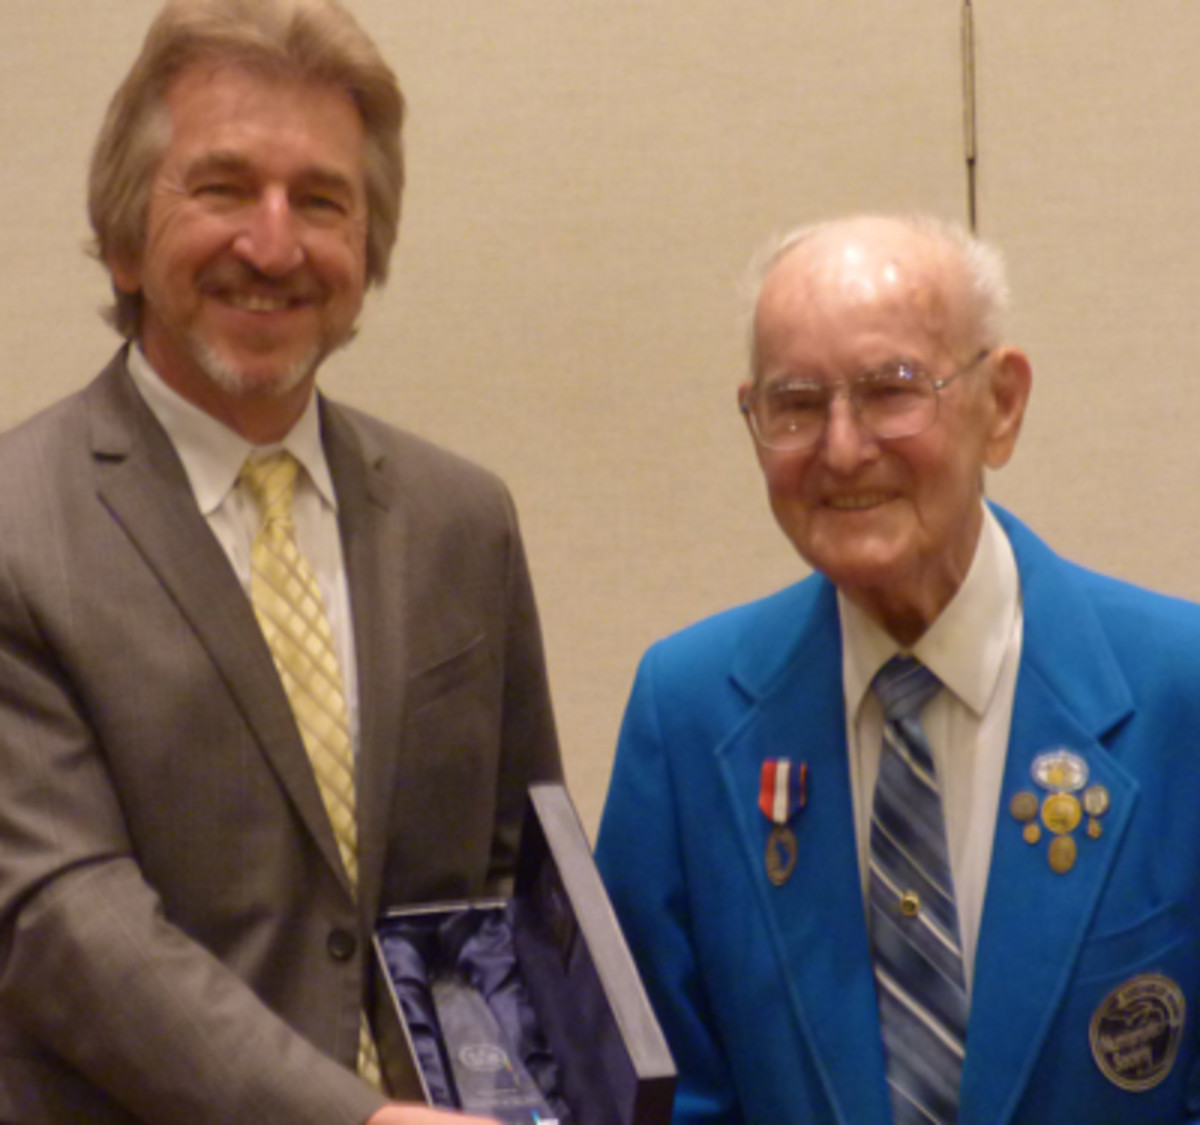 Raymond W. Dillard, right, receives recognition for his induction into the ANA Hall of Fame from Jeff Garrett.